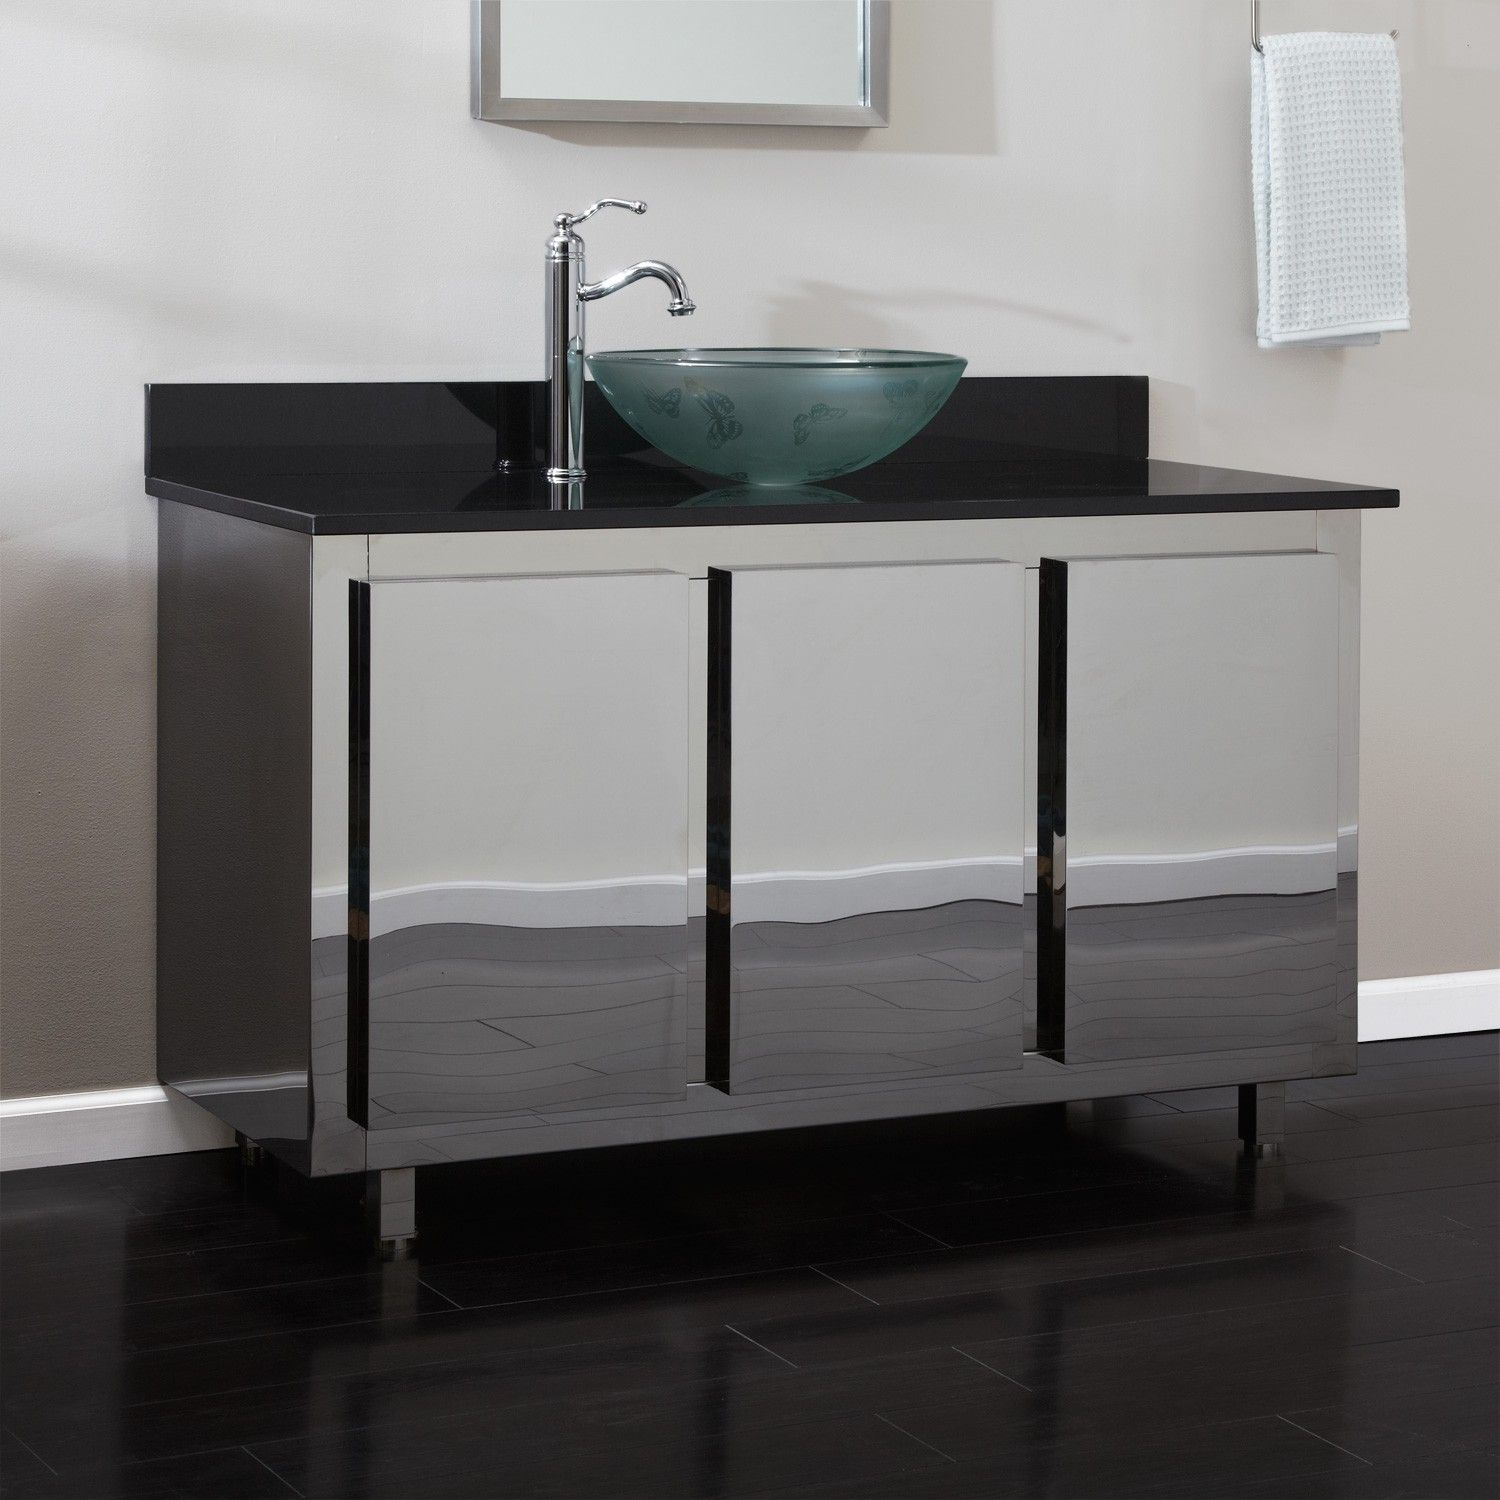 Stainless Steel Bathroom Vanity Bathroom Vanities Vessel Sink